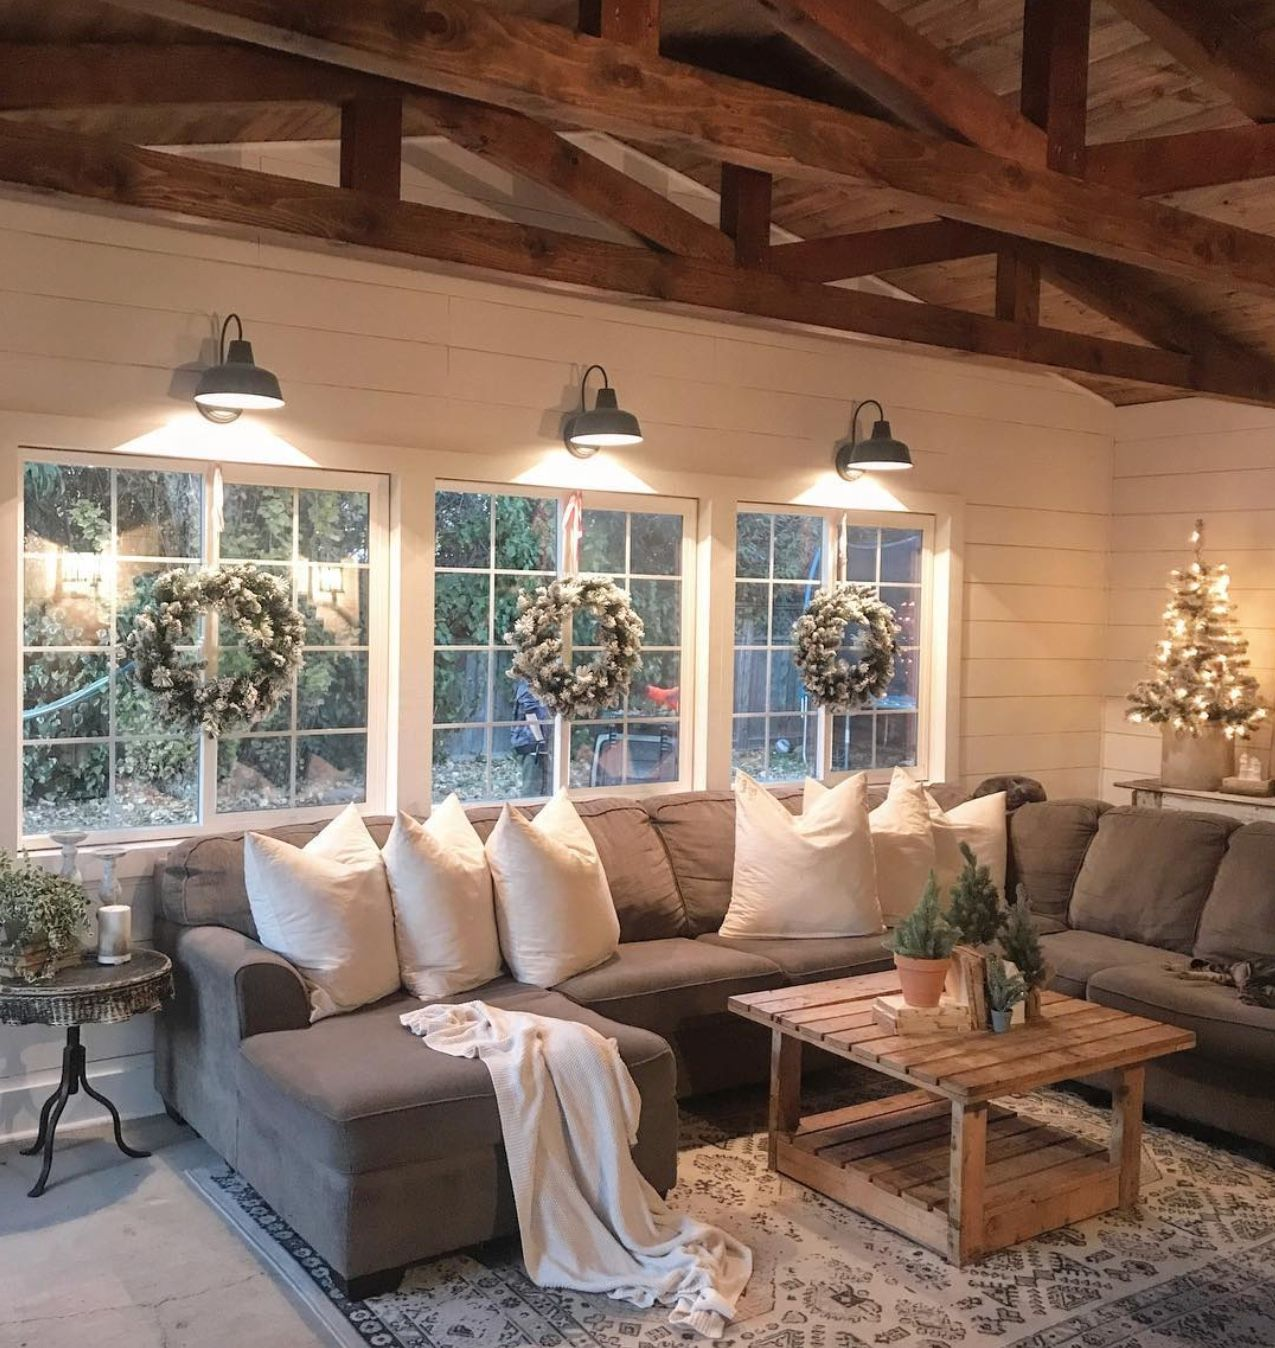 I Love This Simple Elegant Rustic Love The Down Lights